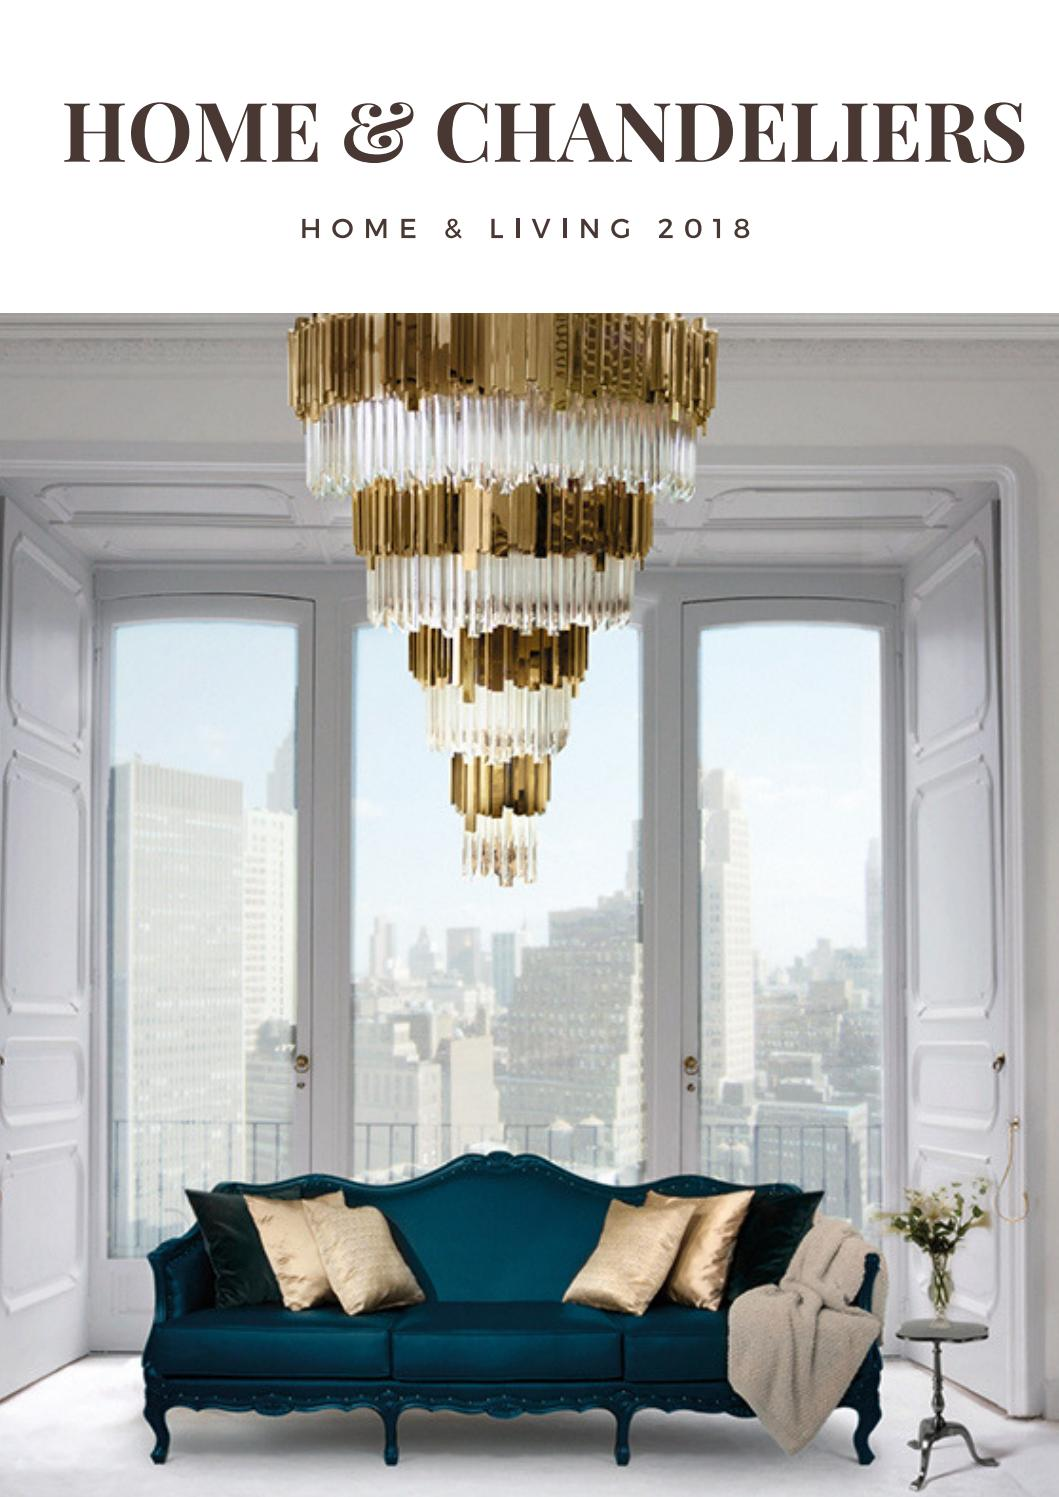 luxury chandeliers decor home ideas interior design trends 2018 luxury brands home living by. Black Bedroom Furniture Sets. Home Design Ideas